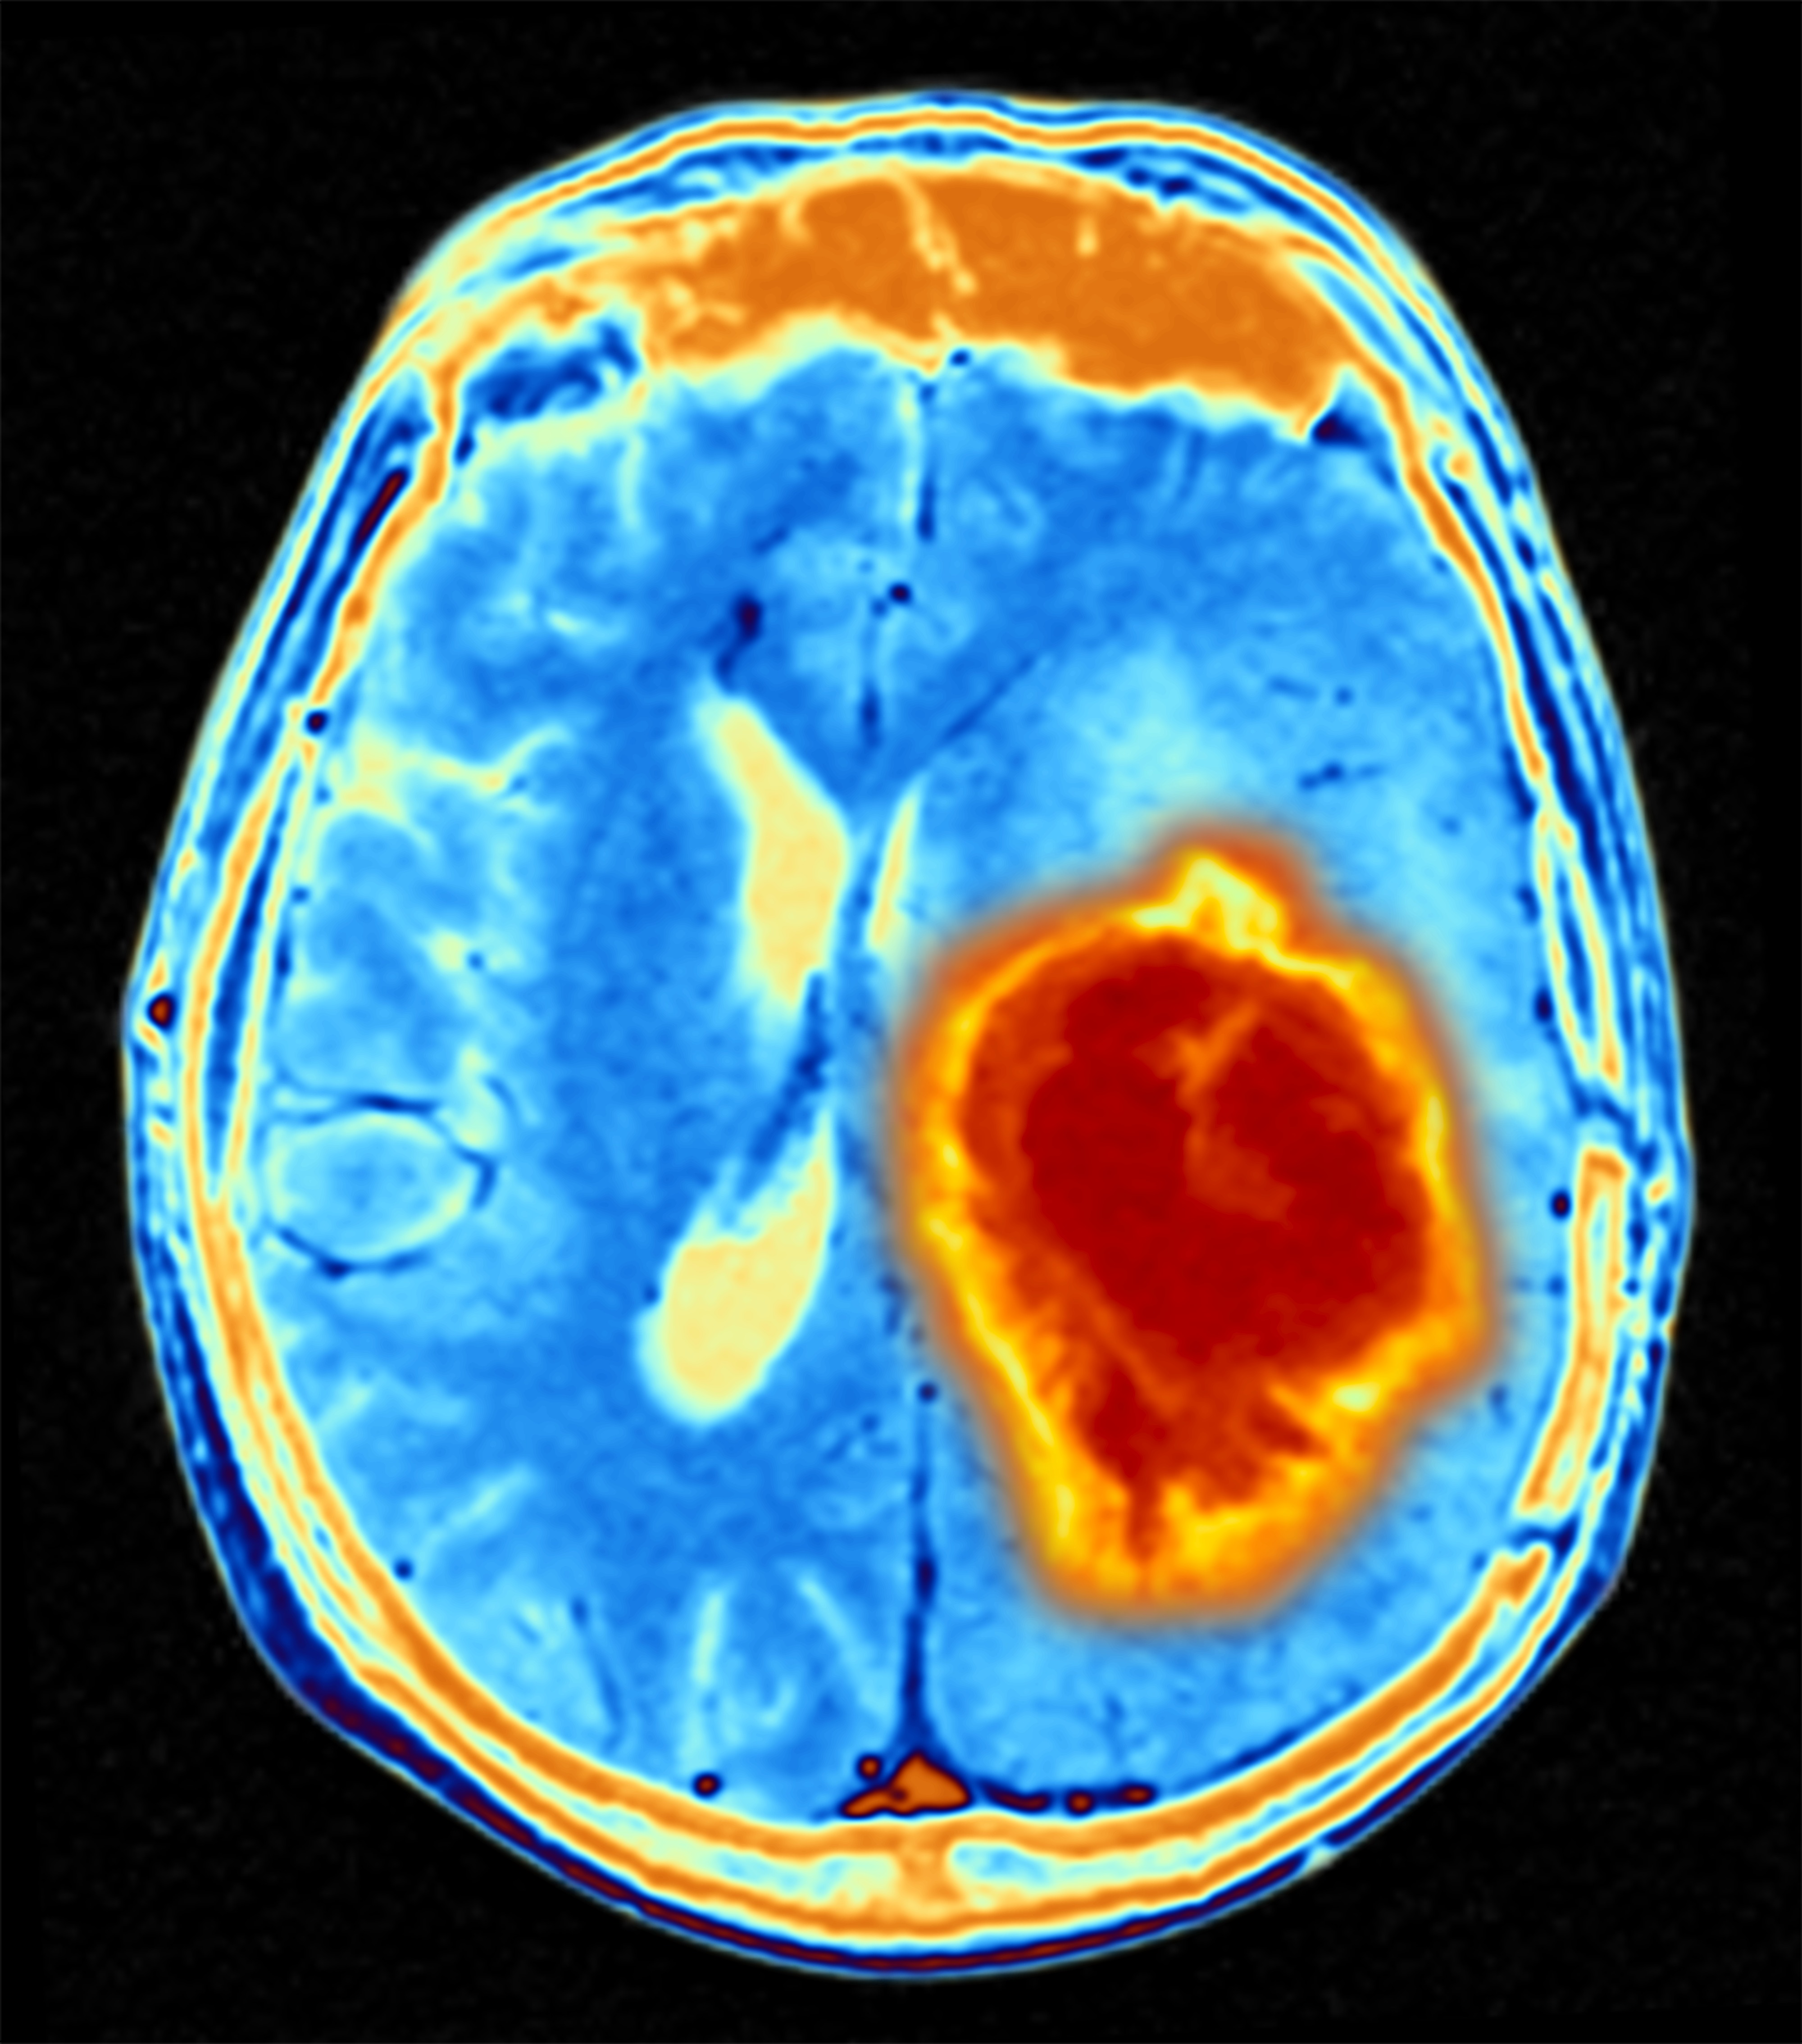 Researchers Report Data from First Clinical Trial Assessing Brain Tumor Vaccine that Targets Specific Mutation